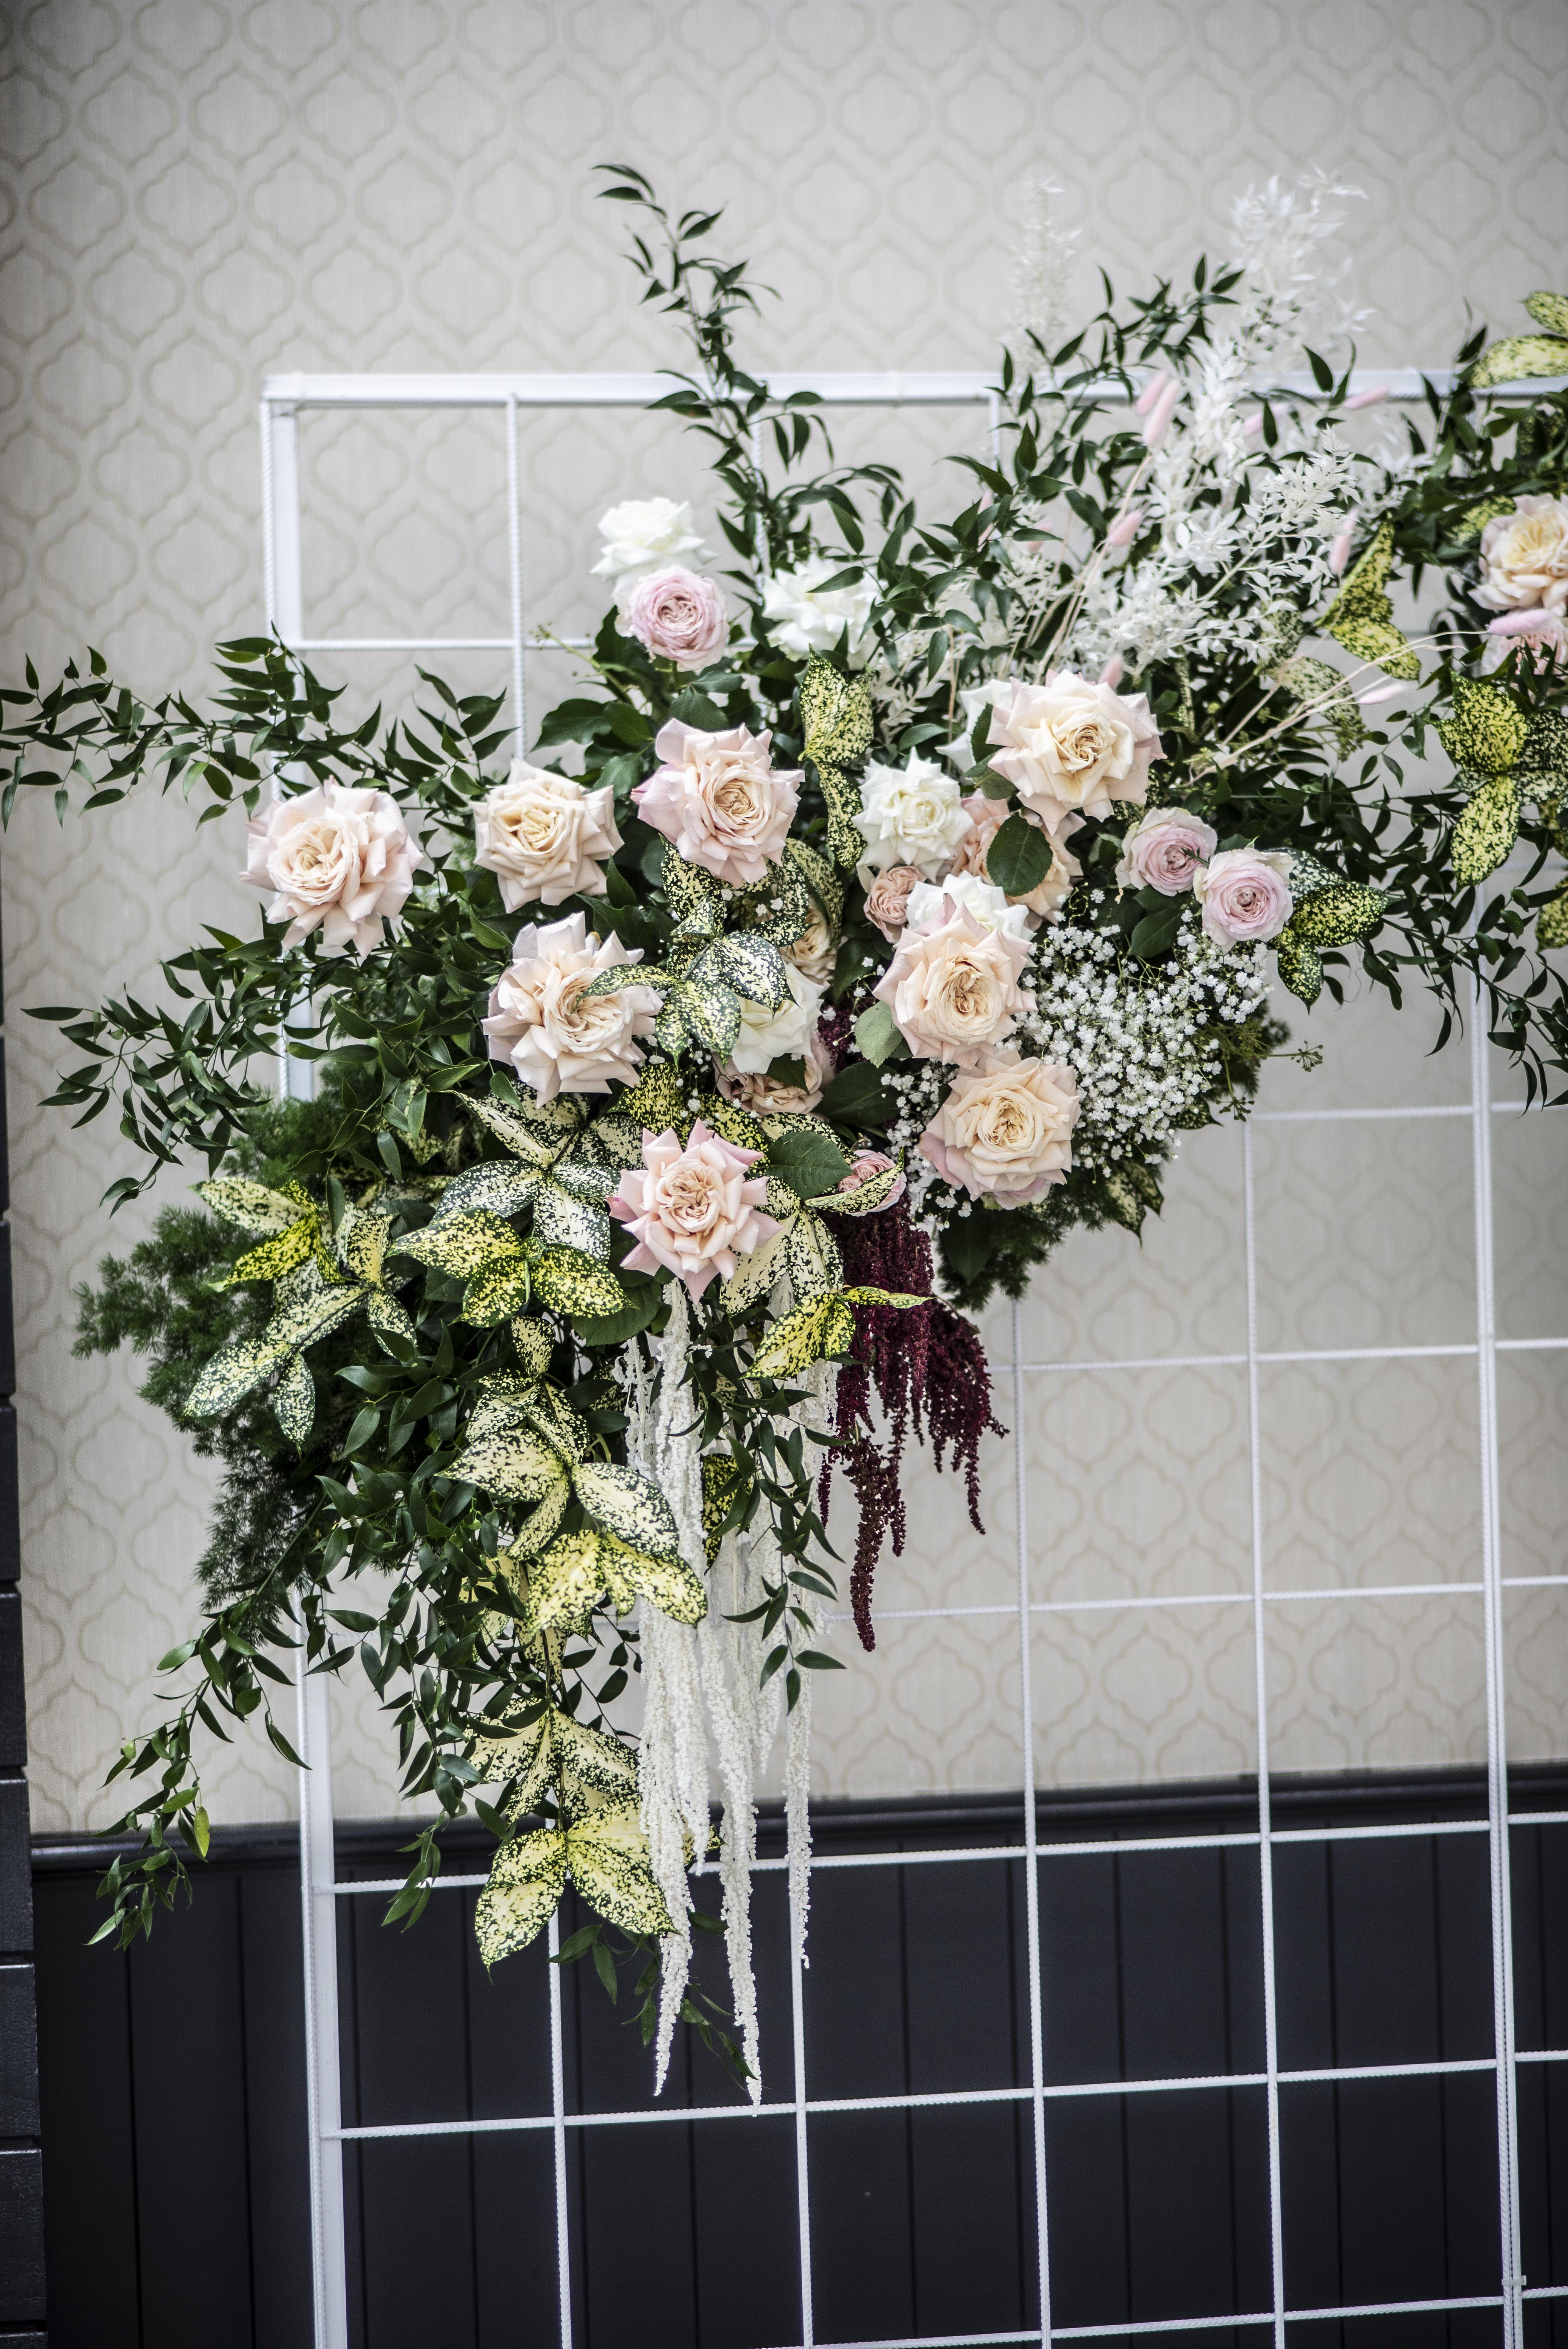 Fresh floral Photobooth backdrop over a white grid